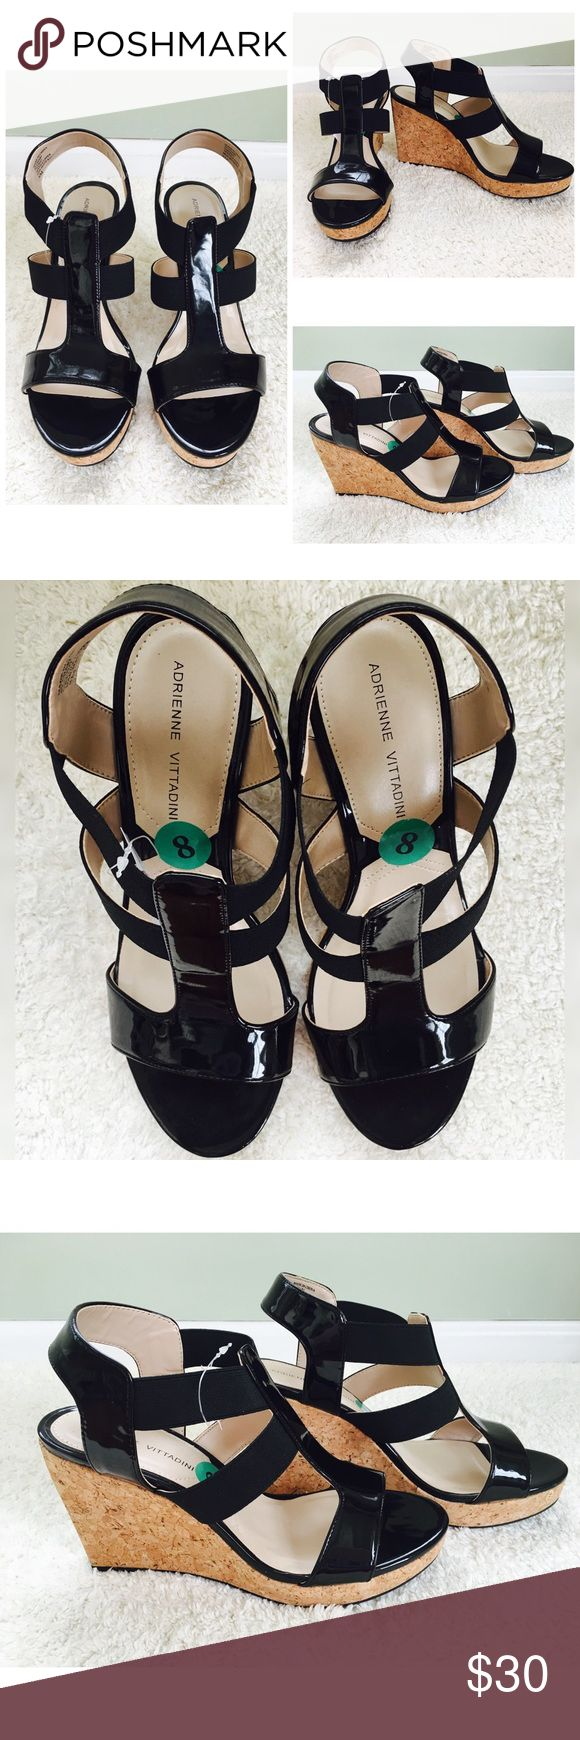 Adrienne Vittadini Wedges!!👠🌴 NWT! Trendy & Chic Adrenne Vittadini Wedges. Top is black patent leather mixed with a black stretchy fabric. Never worn! NWT! Adrienne Vittadini Shoes Heels